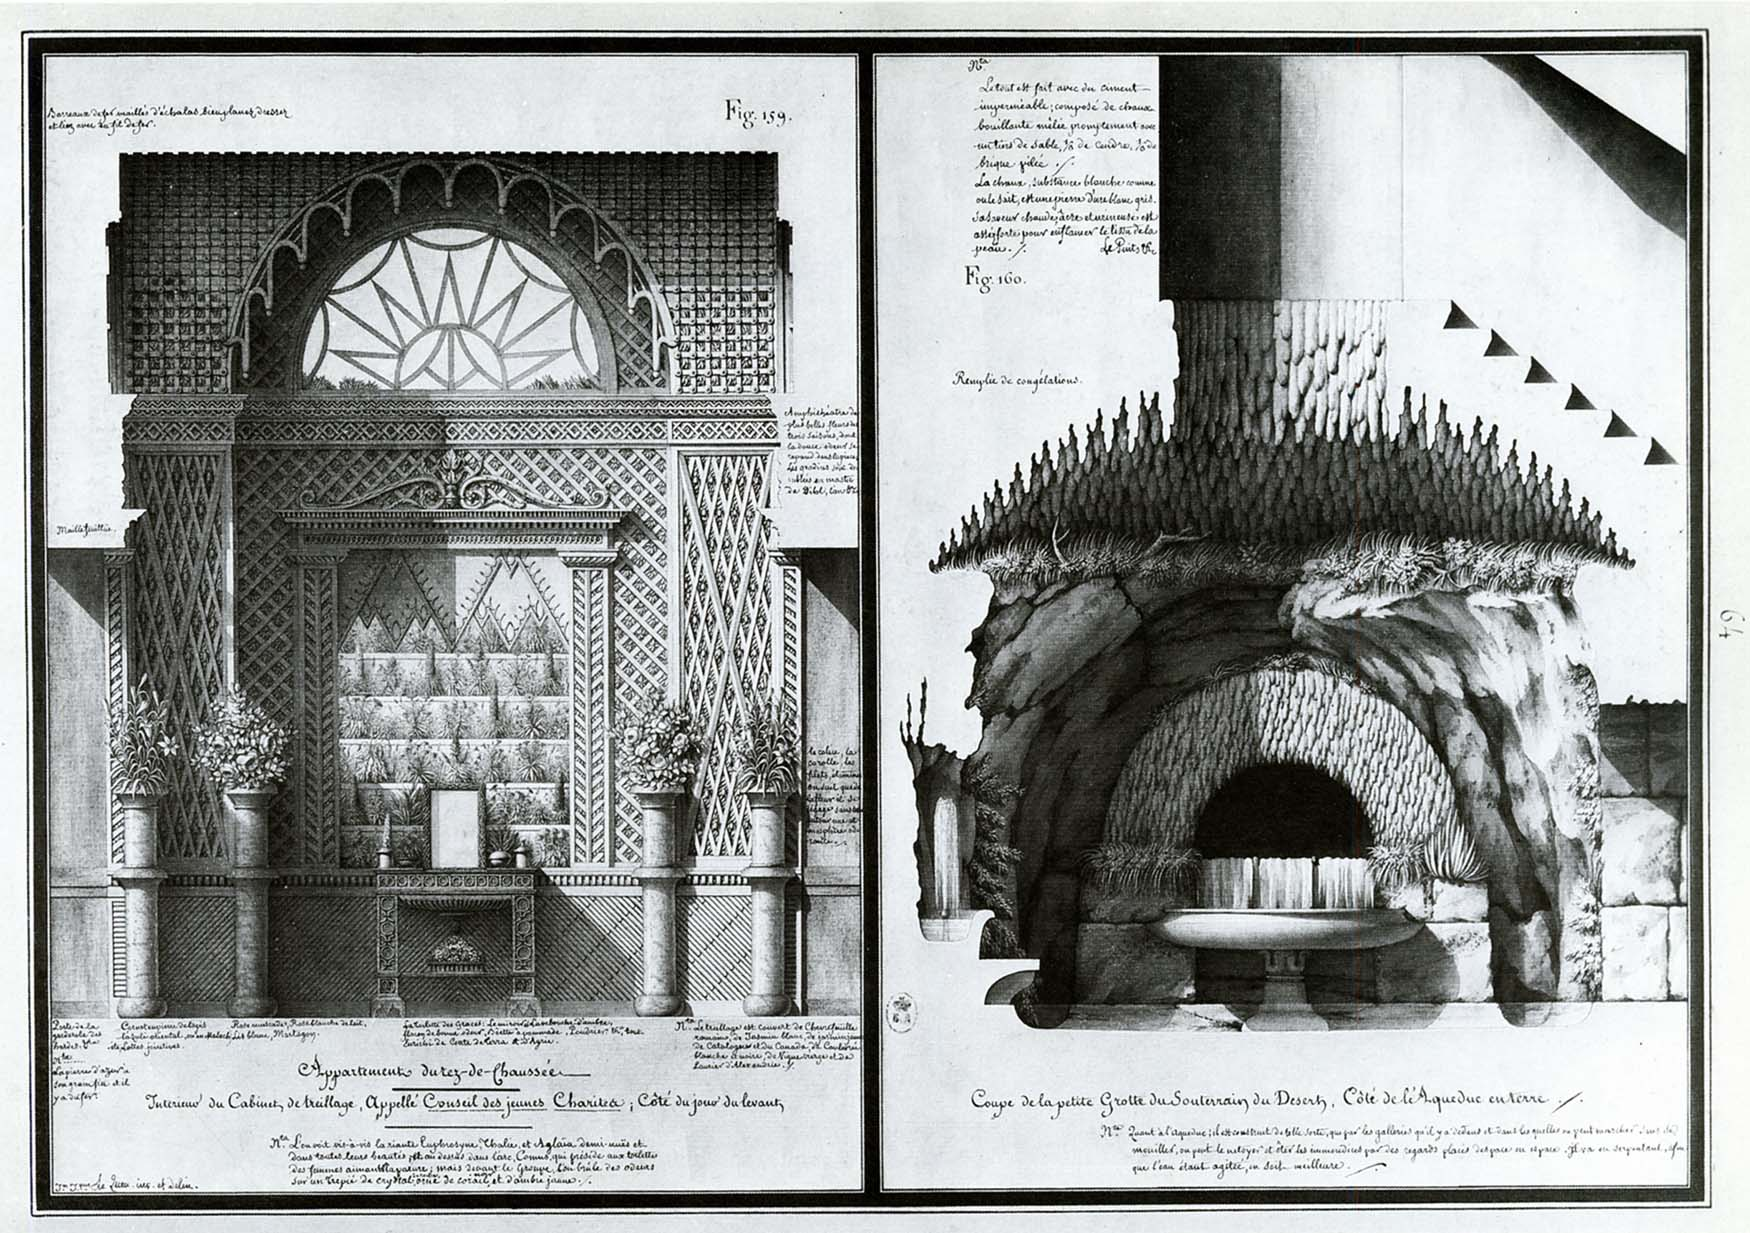 (L) Ground floor apartment of Council of Young Graces; (R) small grotto of underground chamber of the desert…